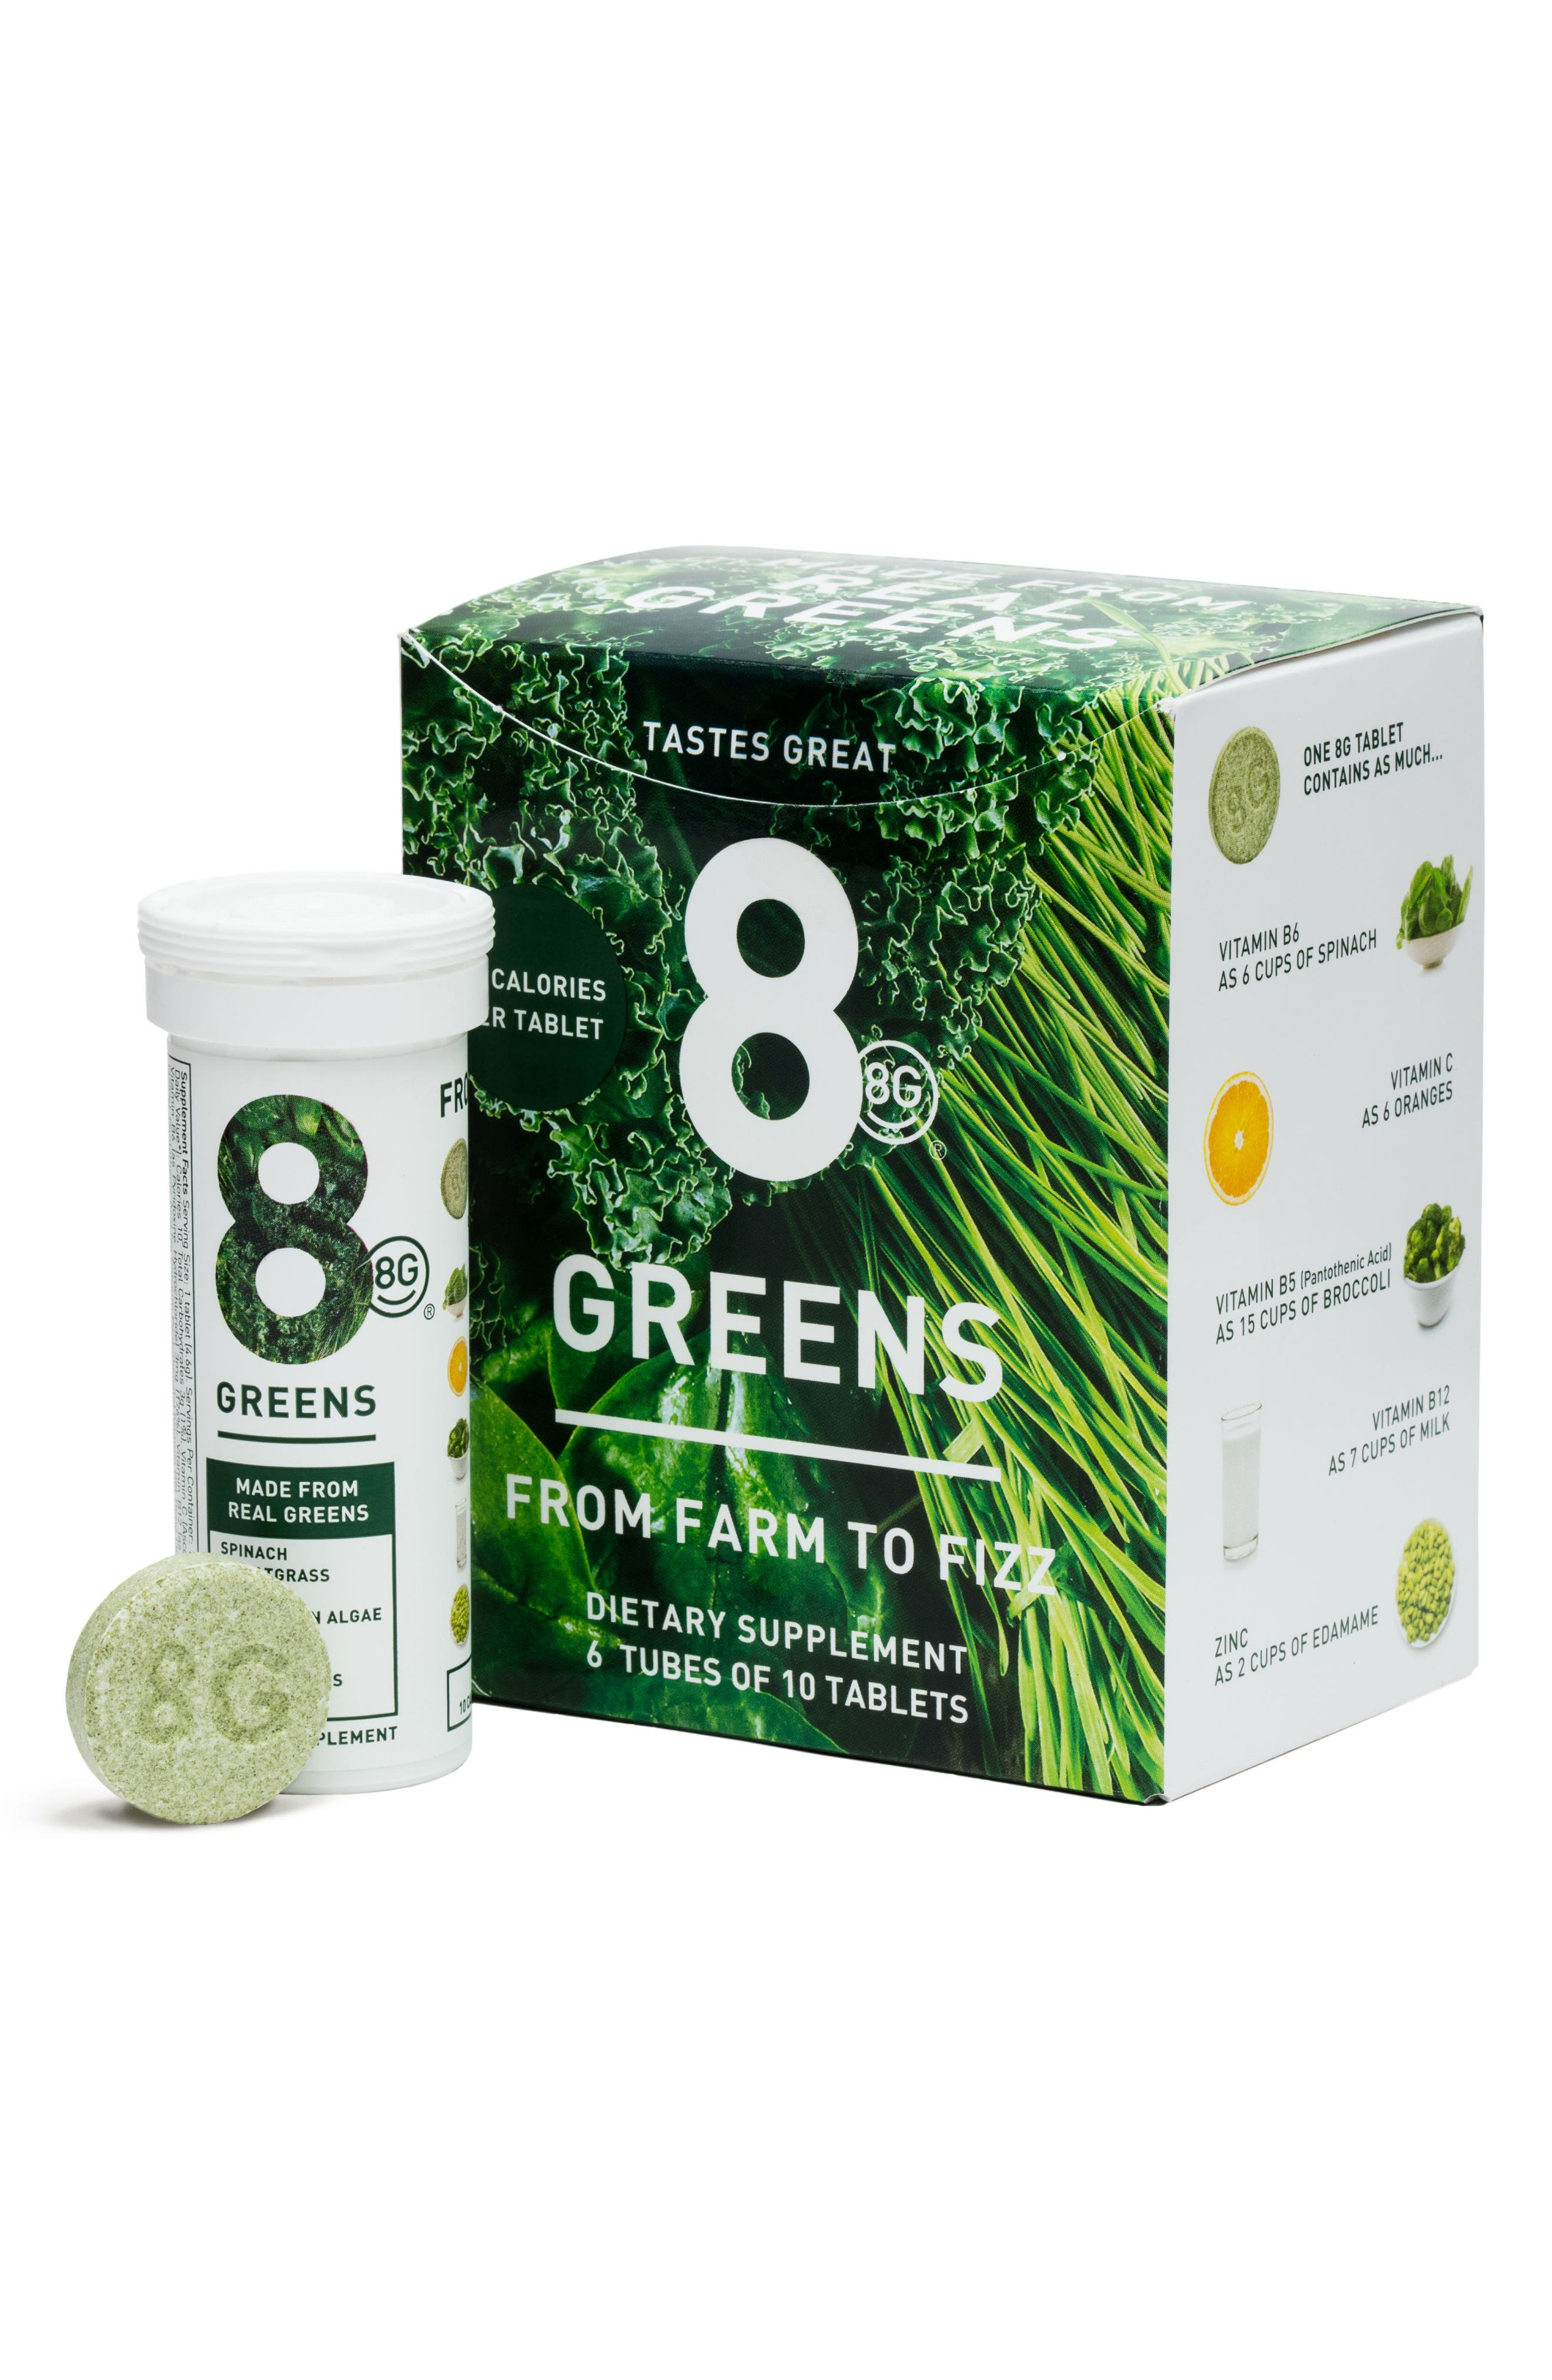 8G Greens 6-Pack Dietary Supplement, Main, color, NO COLOR